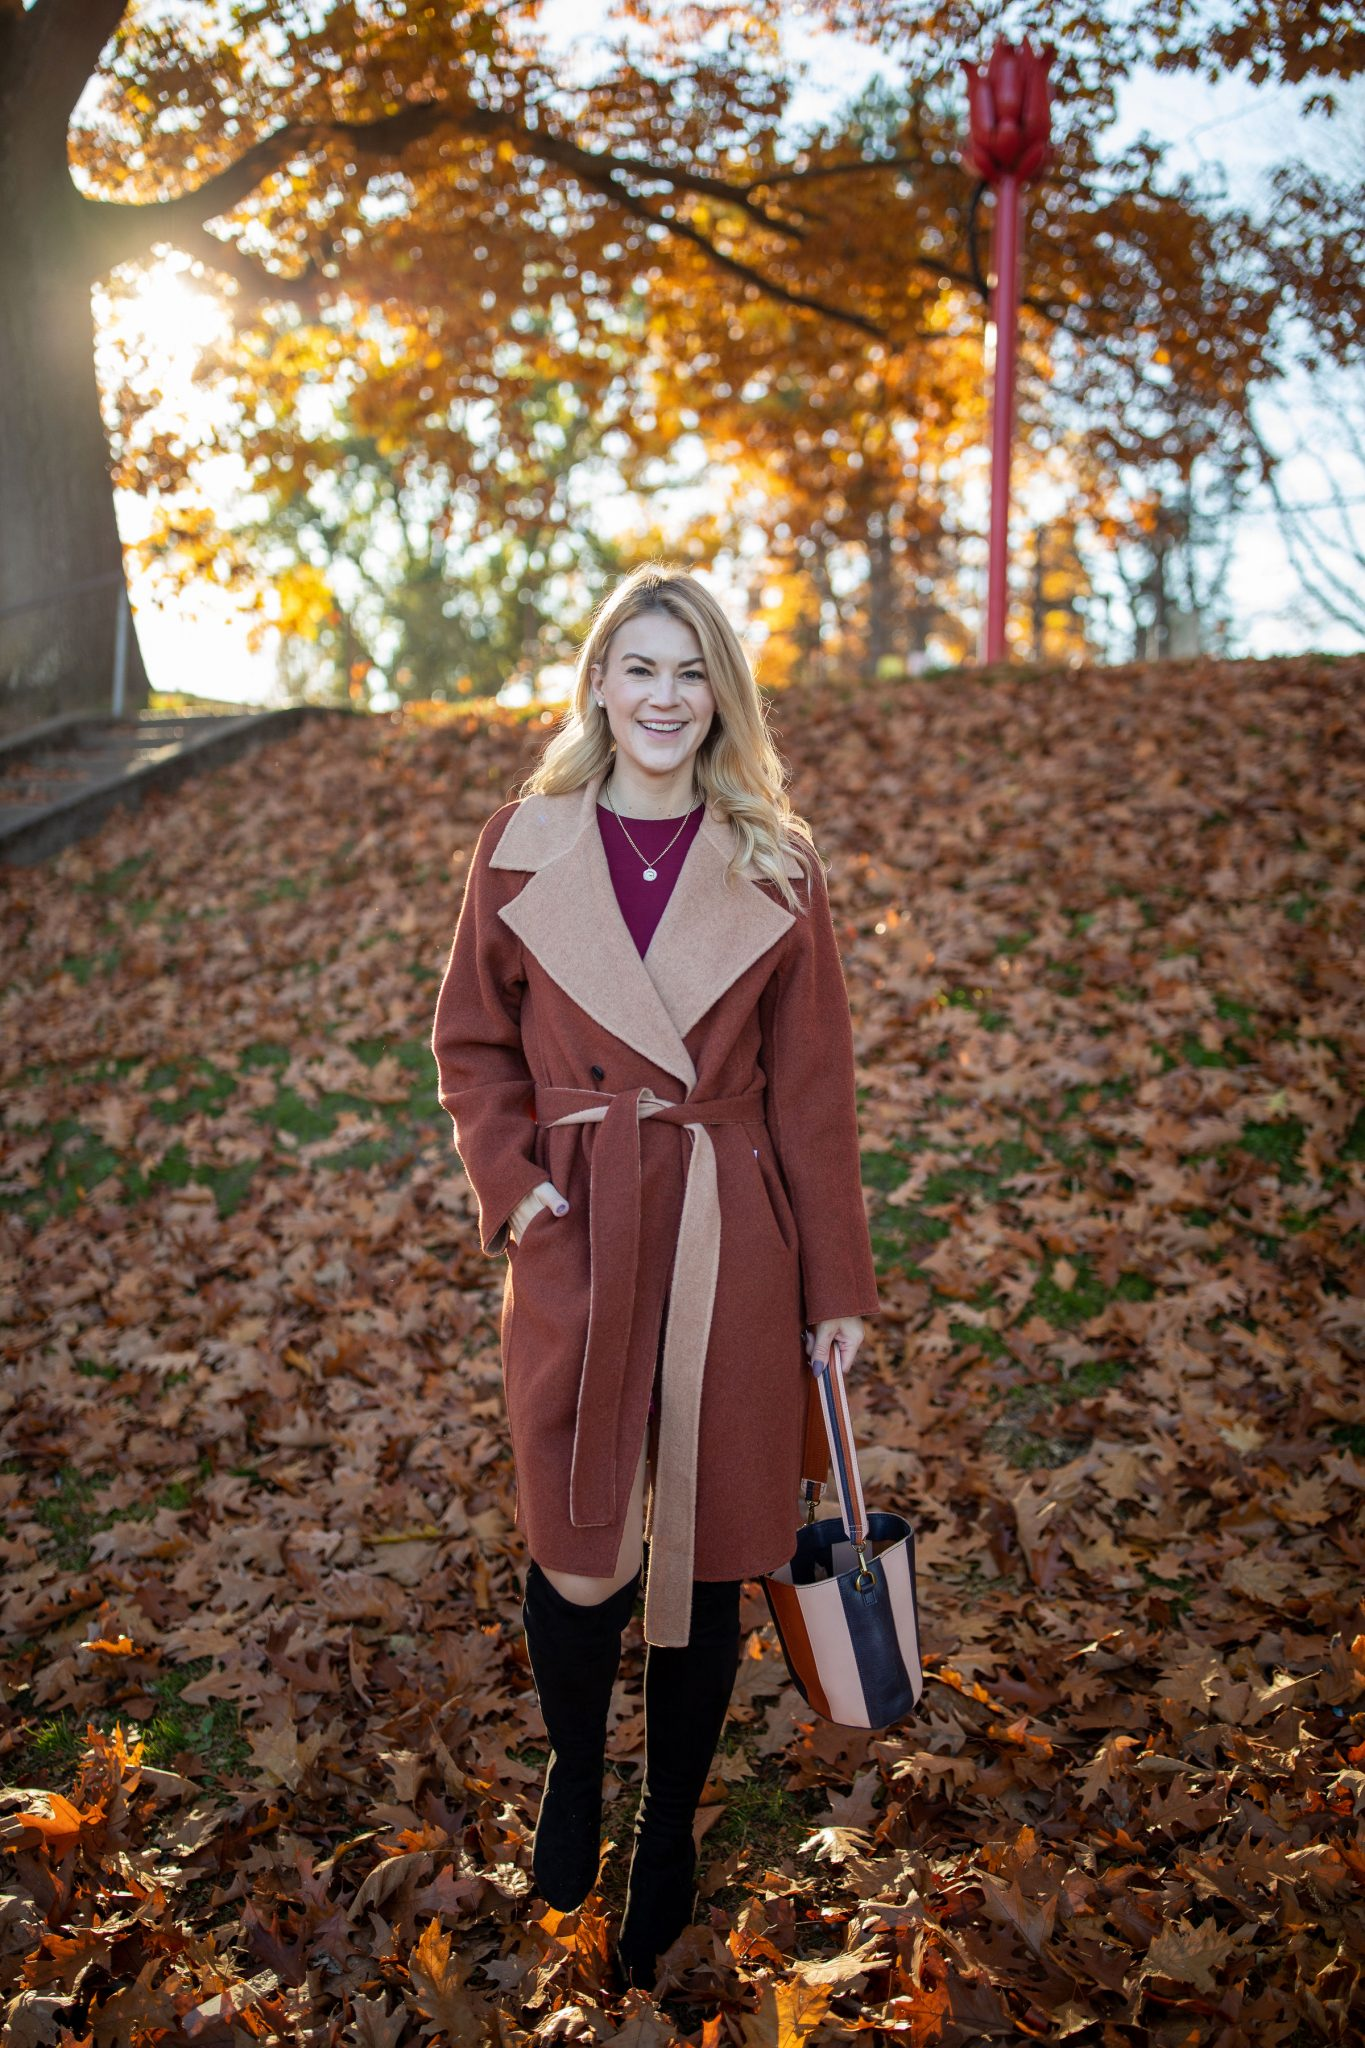 Fall Coat by popular Seattle tall fashion blog, Whit Wanders: image of a woman wearing a M.M LaFleur Cleo Coat c/o, LuLu Burgundy Dress, OKT Boots from Nordstrom, and holding a Madewell purse.